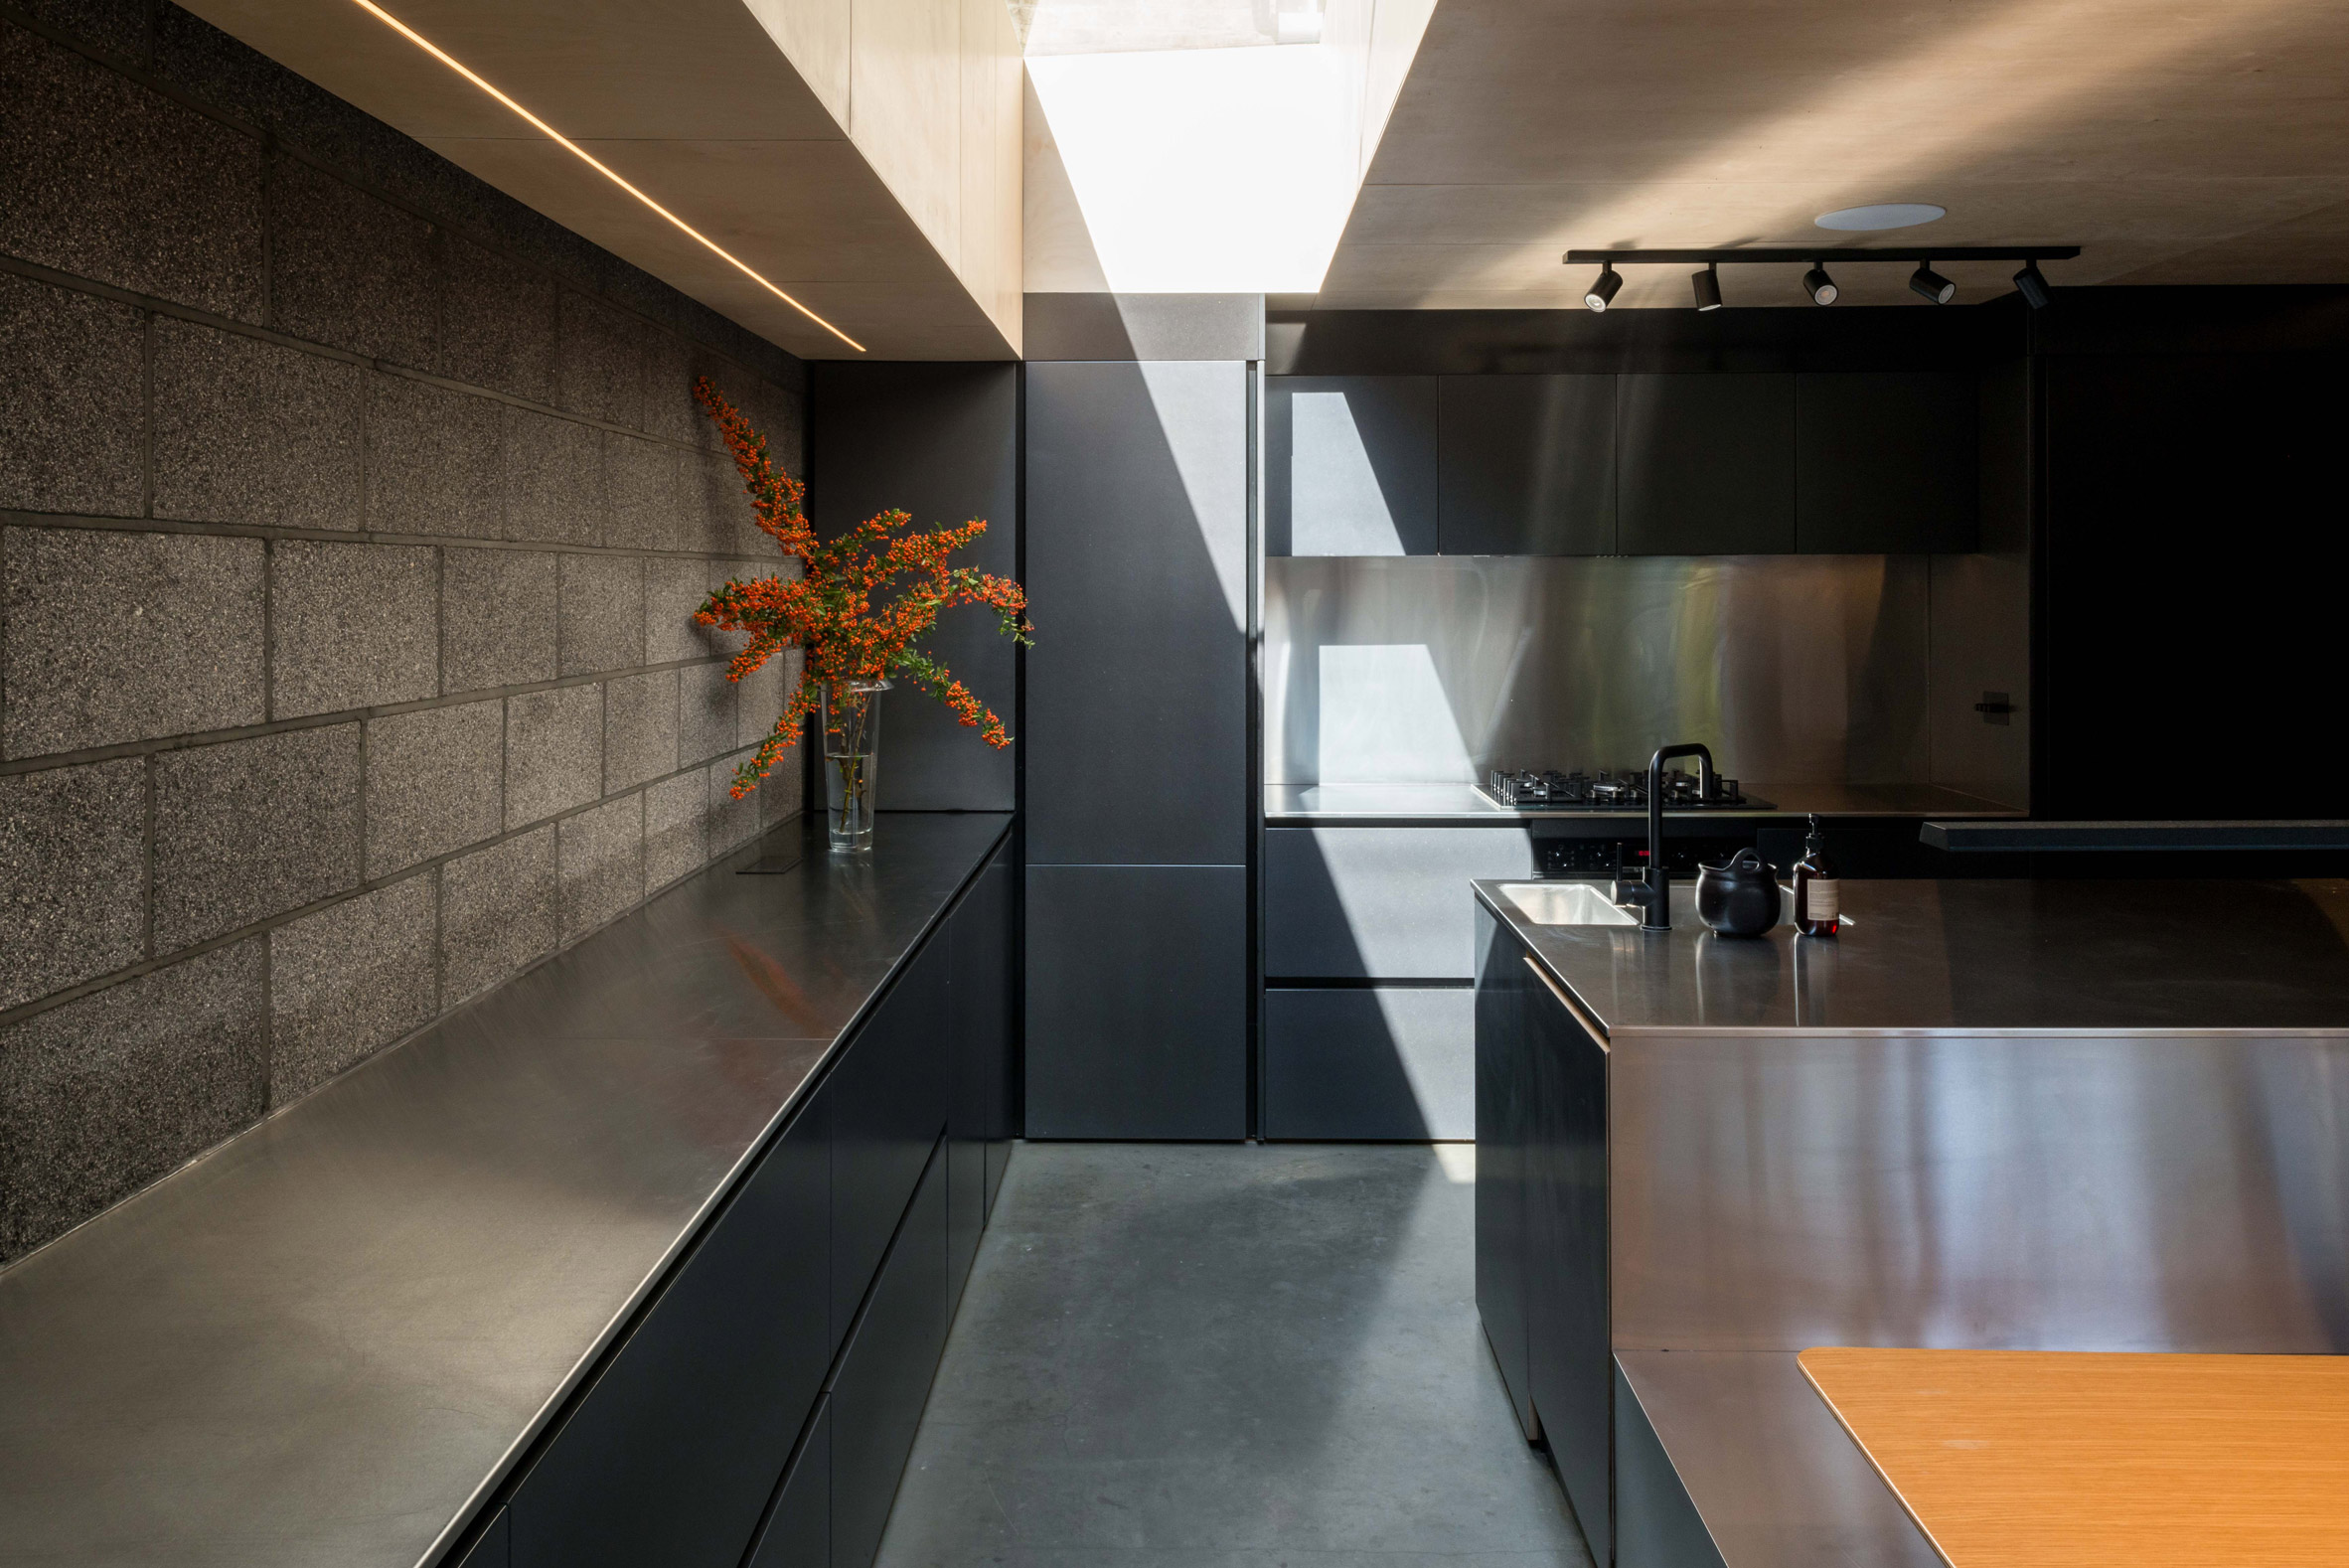 Stainless steel kitchen of Hansler Road house extension